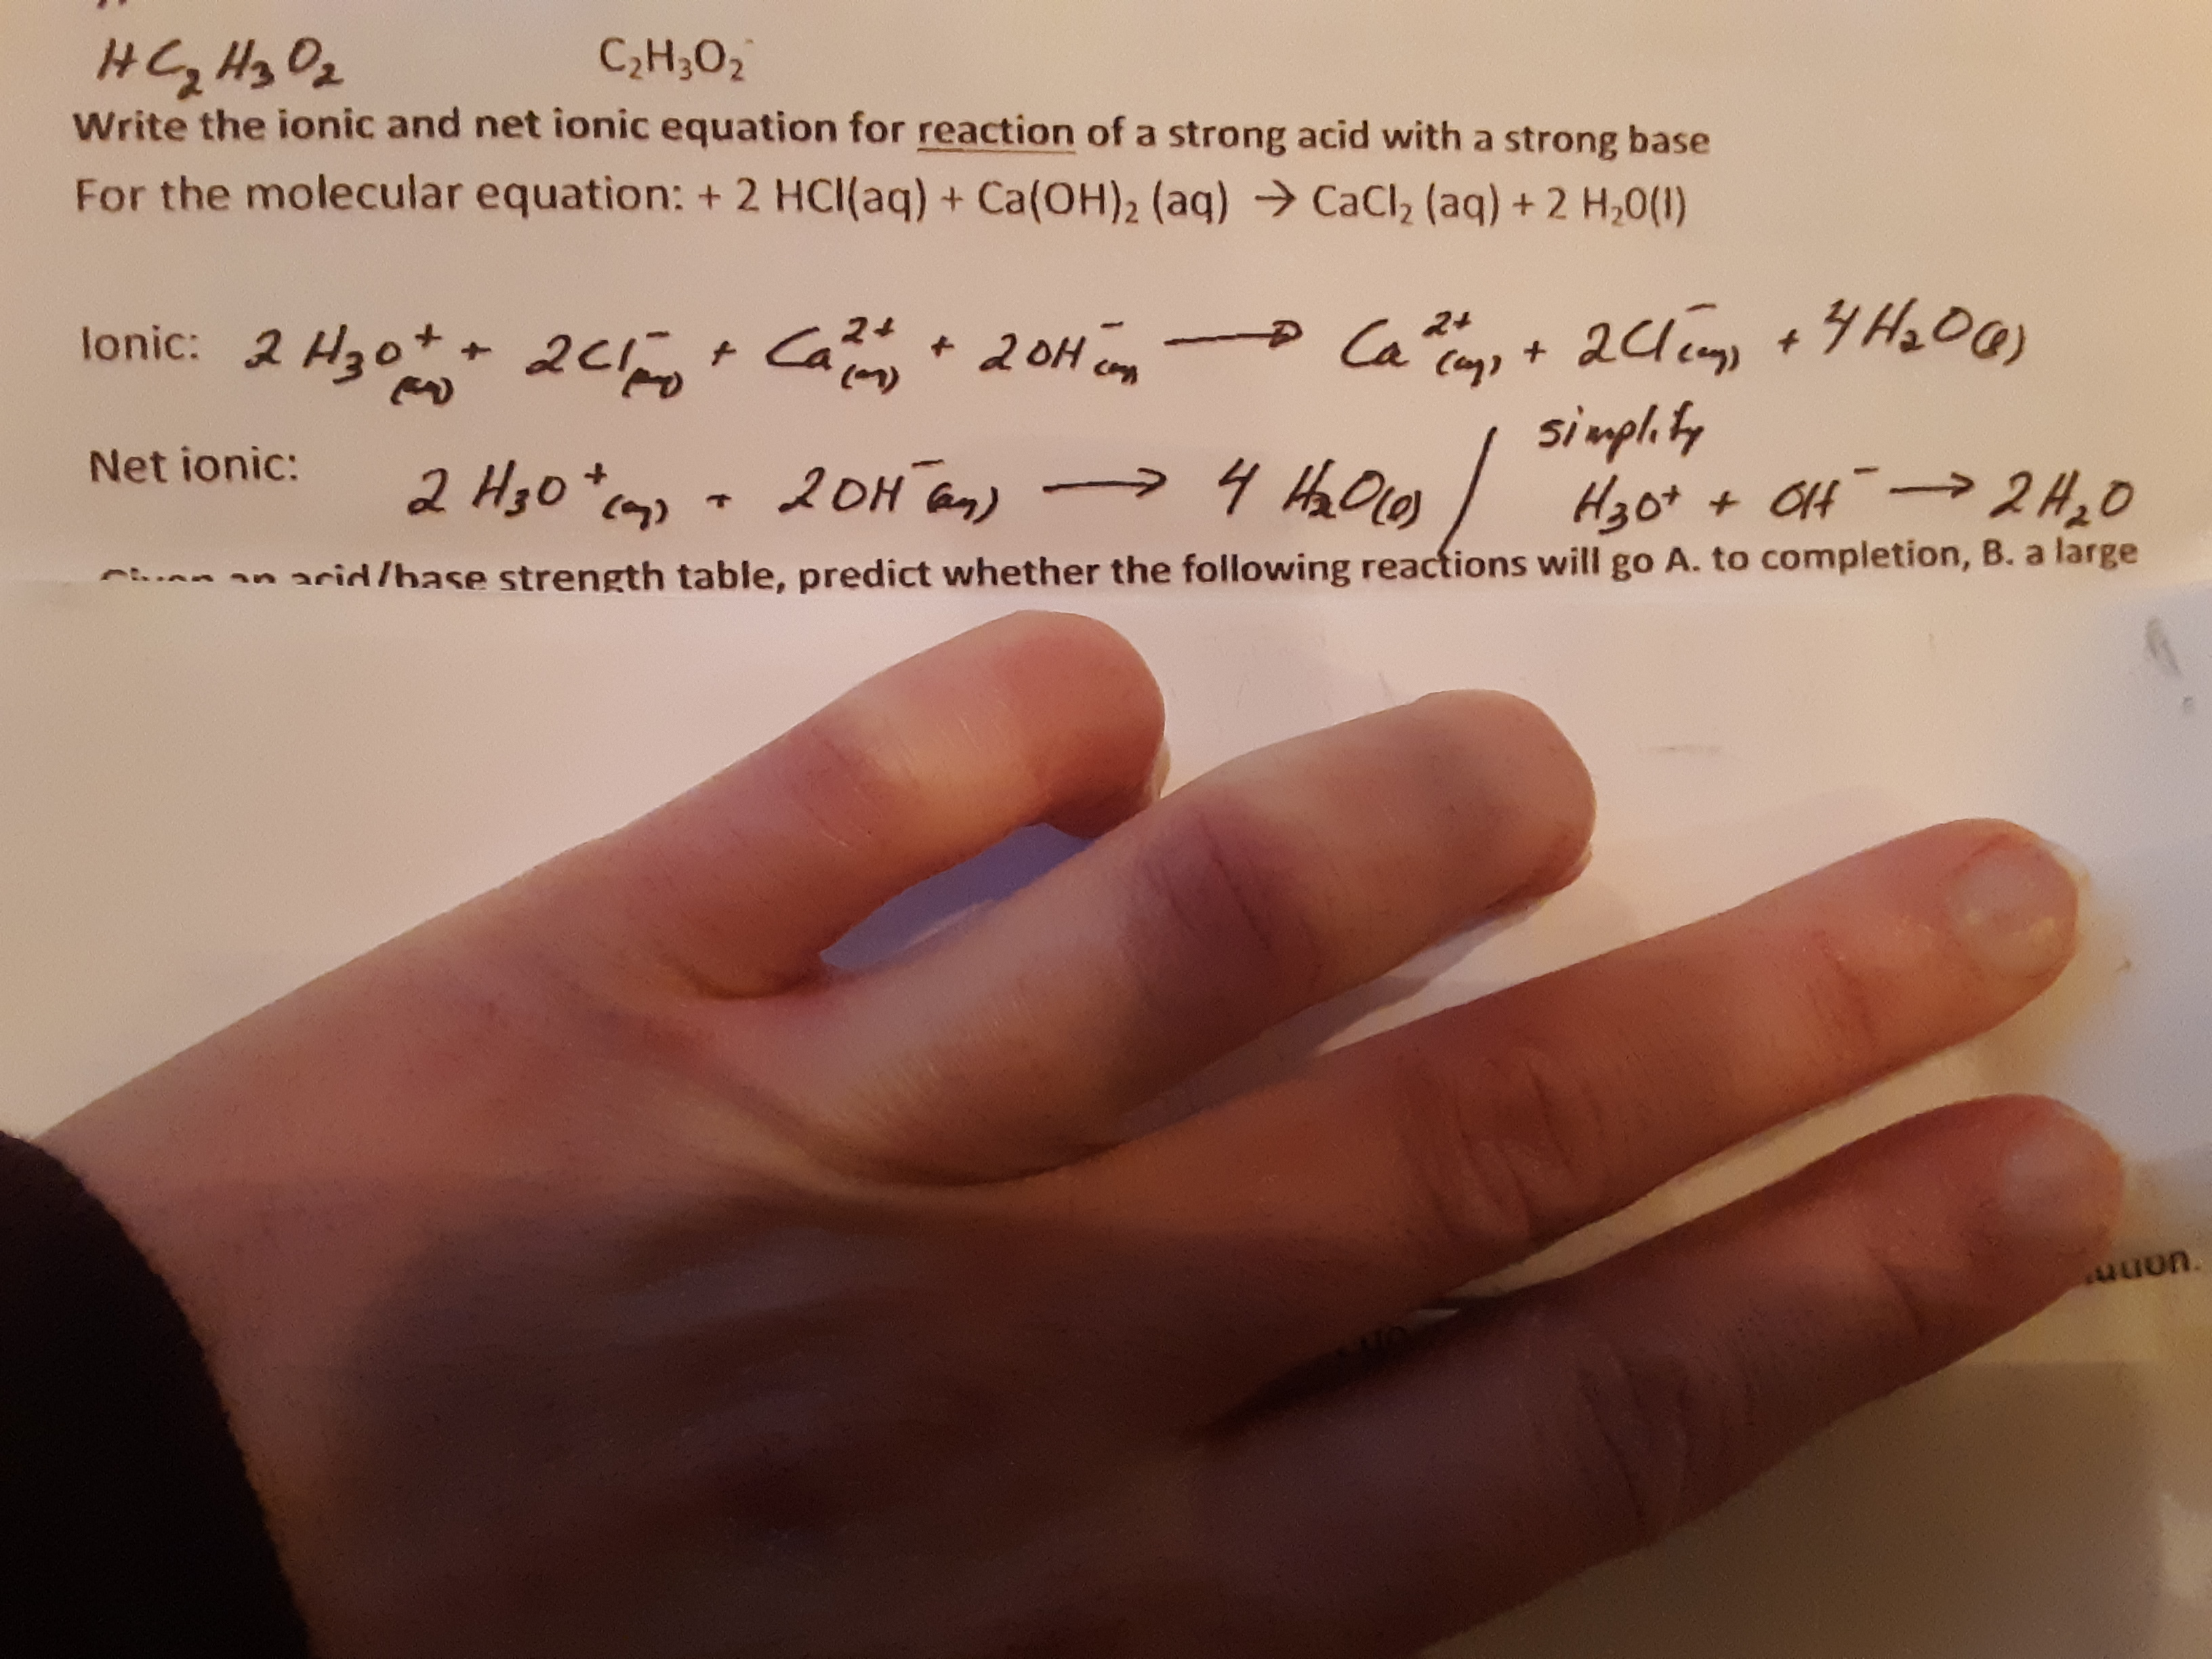 C2H302 Write the ionic and net ionic equation for reaction of a strong acid with a strong base For the molecular equation: + 2 HCl(aq) + Ca(OH)2 (aq) CaCl2 (aq)+ 2 H,0() 2d +H00) sinph ty lonic: 2 H3o 2c Ca 24 + Ca 24 +20H 2oH an) Net ionic: 2 H3o + 7 an arid /hase strength table, predict whether the following reactions will go A. to completion, B. a large סמn.